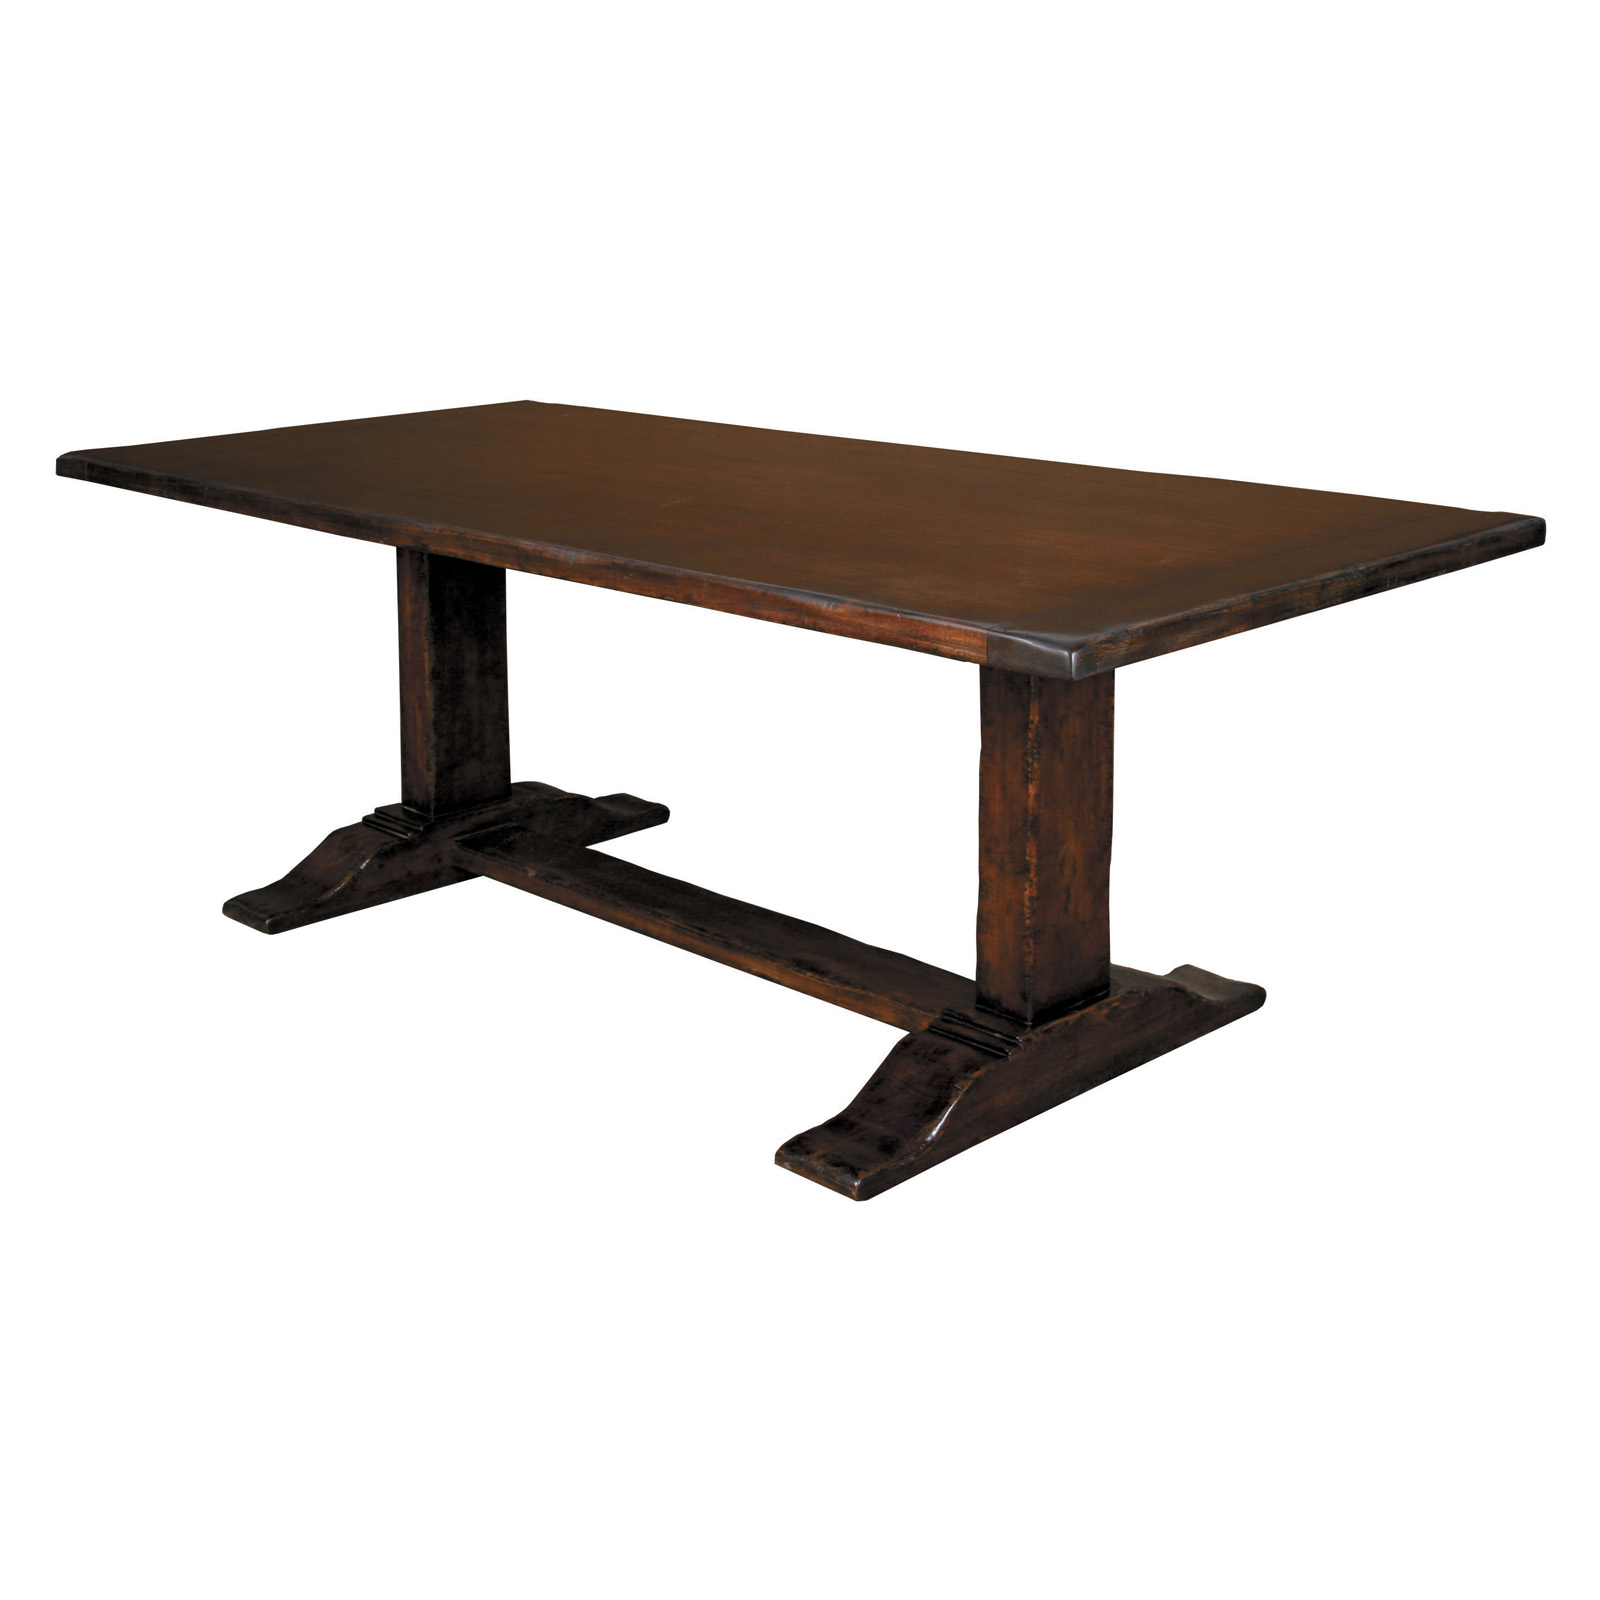 South Cone Sidney Dining Table Mesquite Dining Tables At Hayneedle